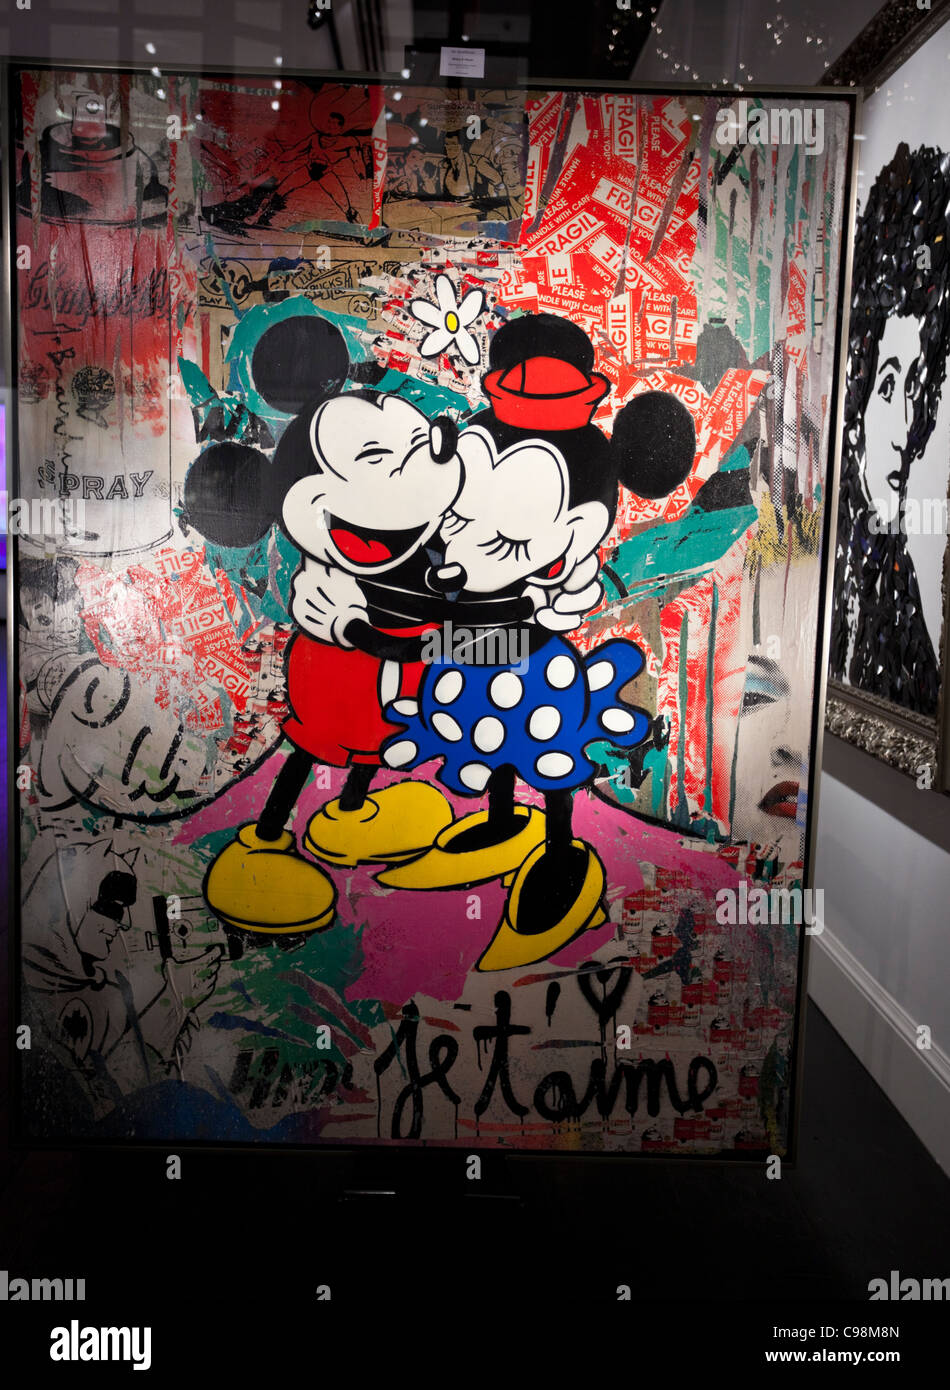 minnie mouse stockfotos minnie mouse bilder alamy. Black Bedroom Furniture Sets. Home Design Ideas